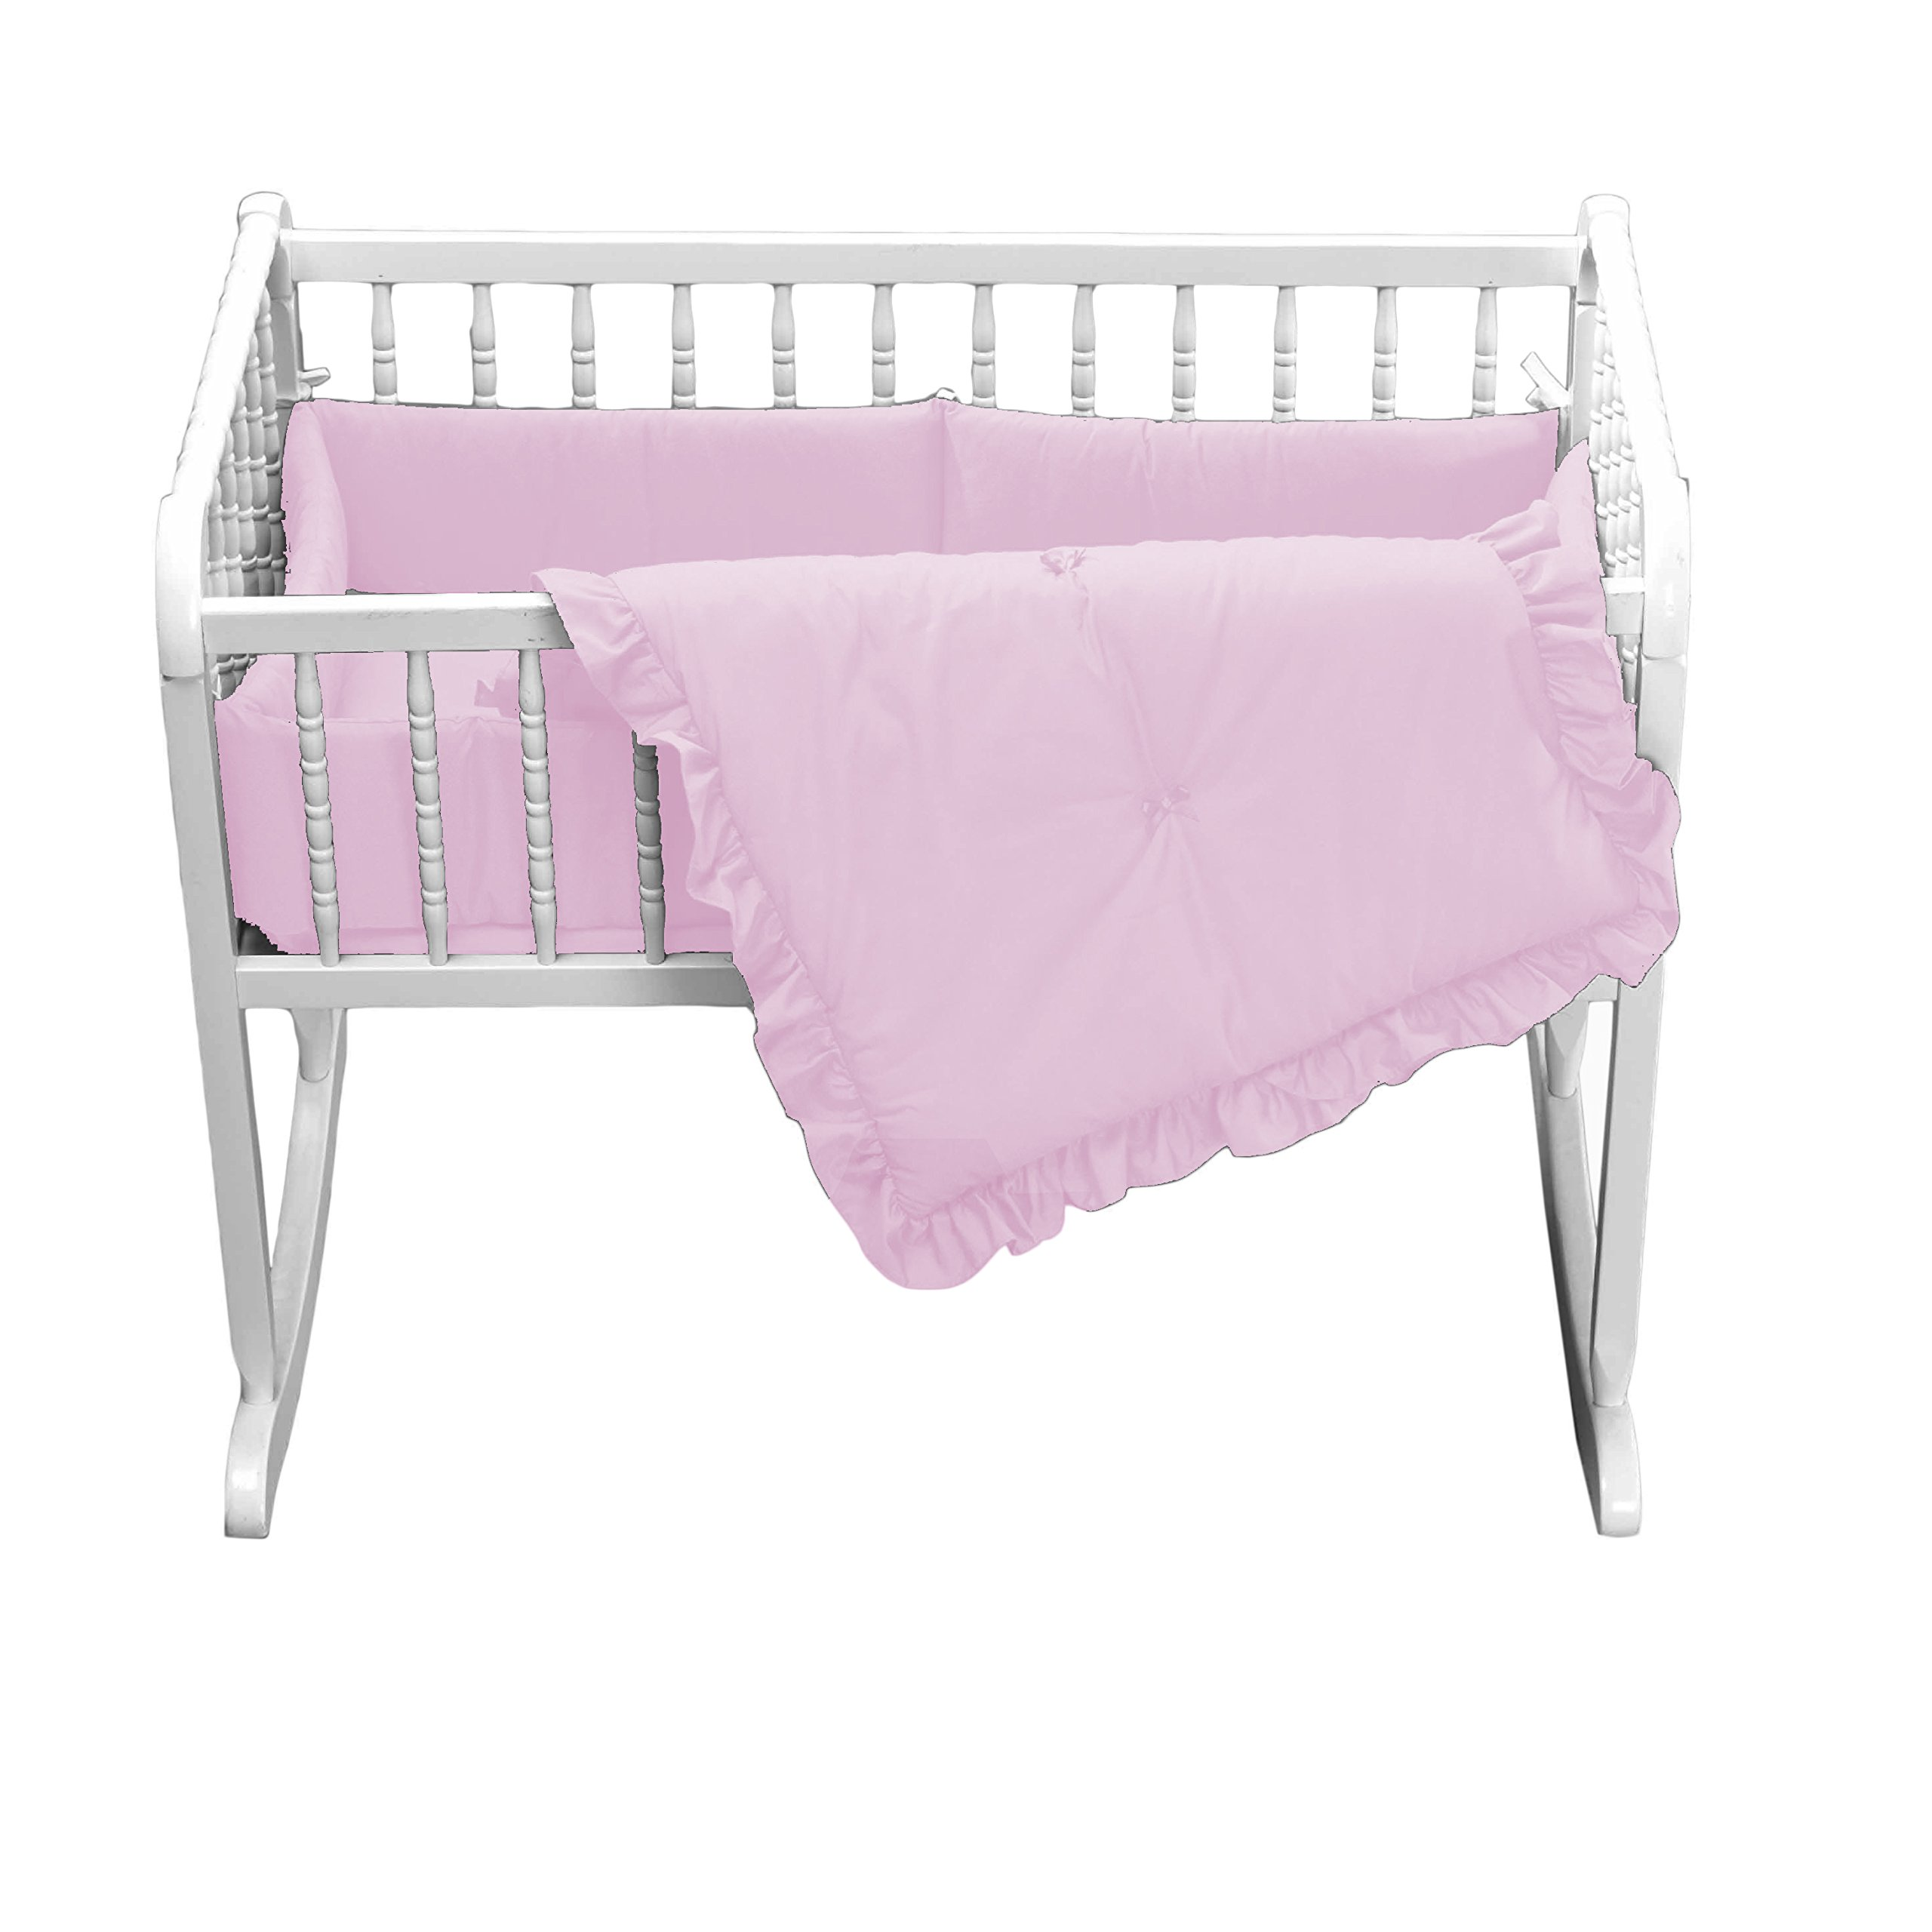 Babydoll Primary s Cradle Bedding, Pink, 15''x33'' by Baby Doll